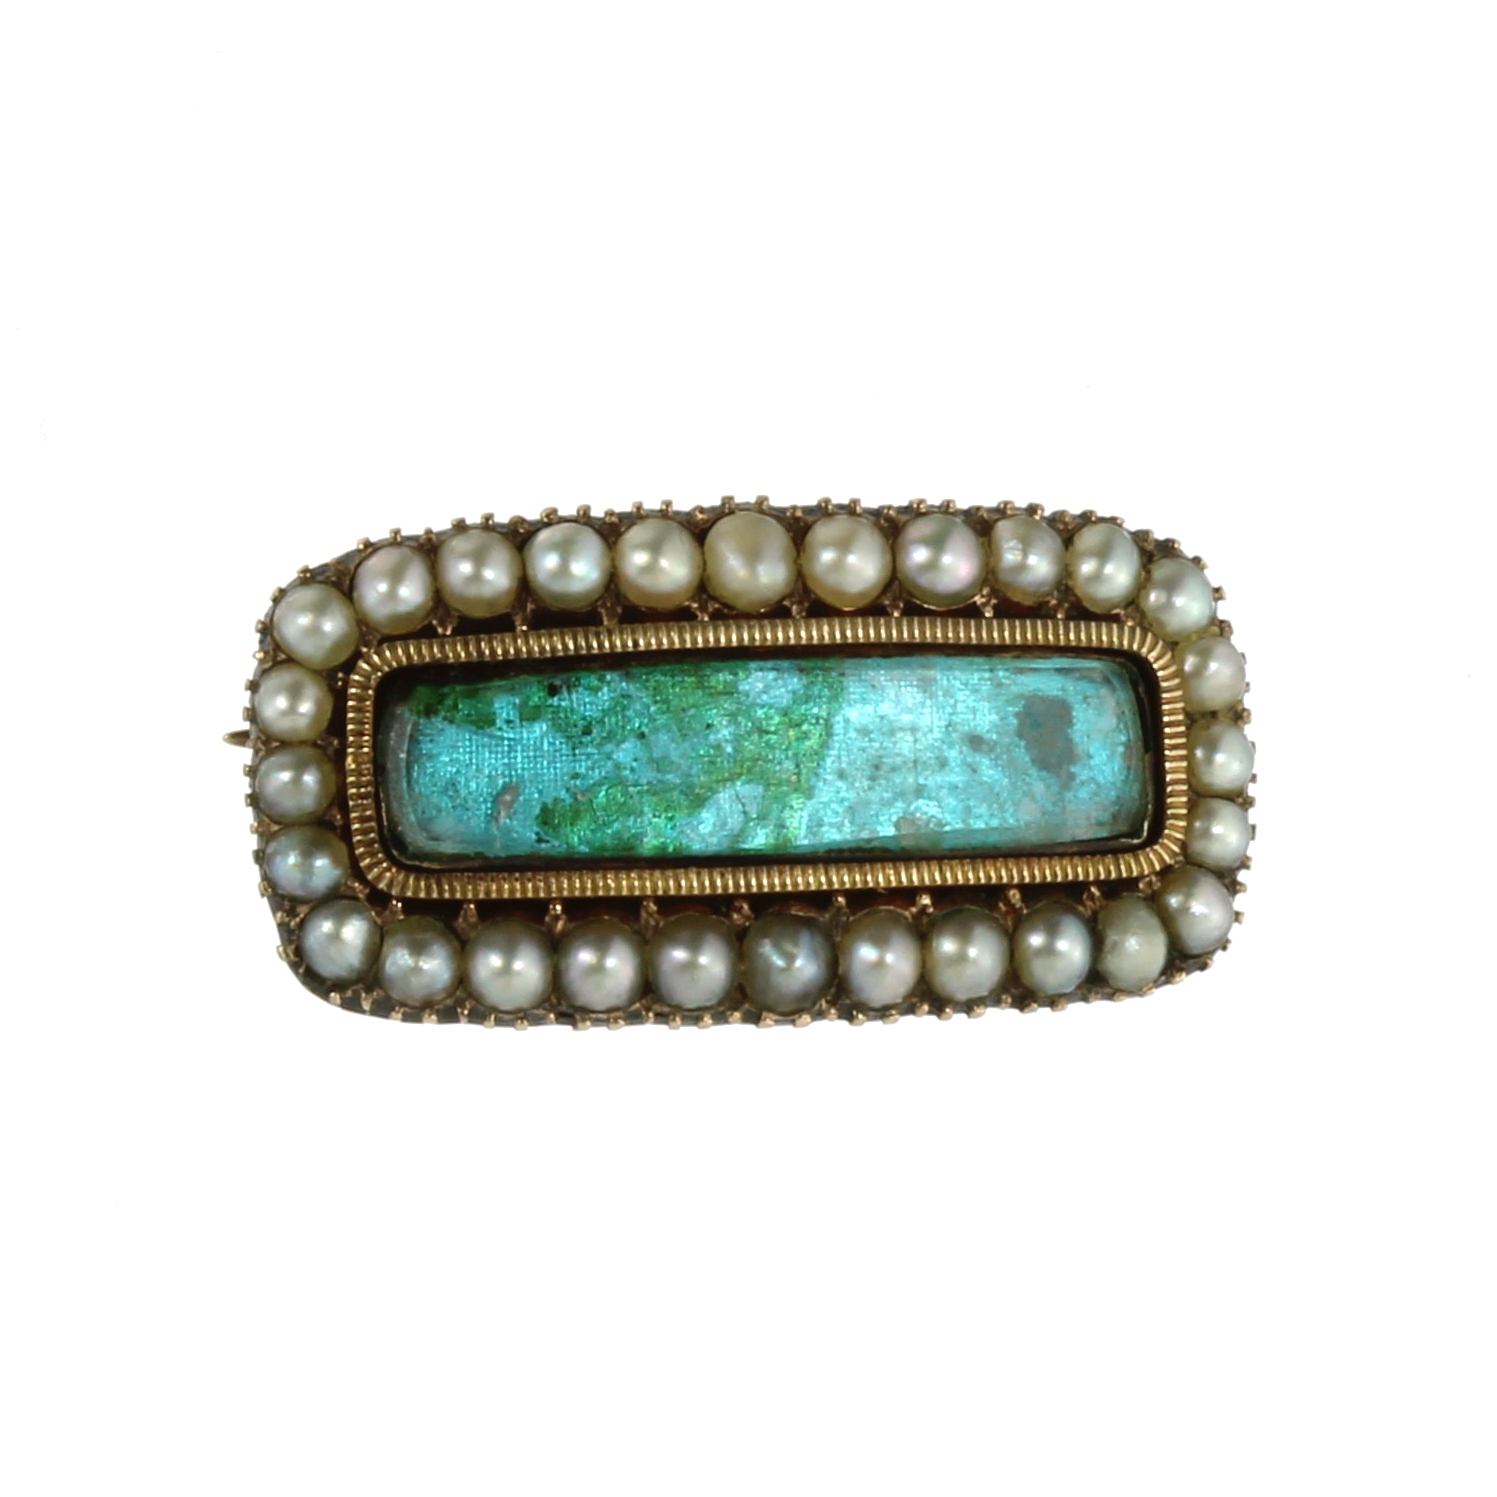 Los 25 - AN ANTIQUE SEED PEARL MOURNING BROOCH, 19TH CENTURY of rounded rectangular form with glass covered